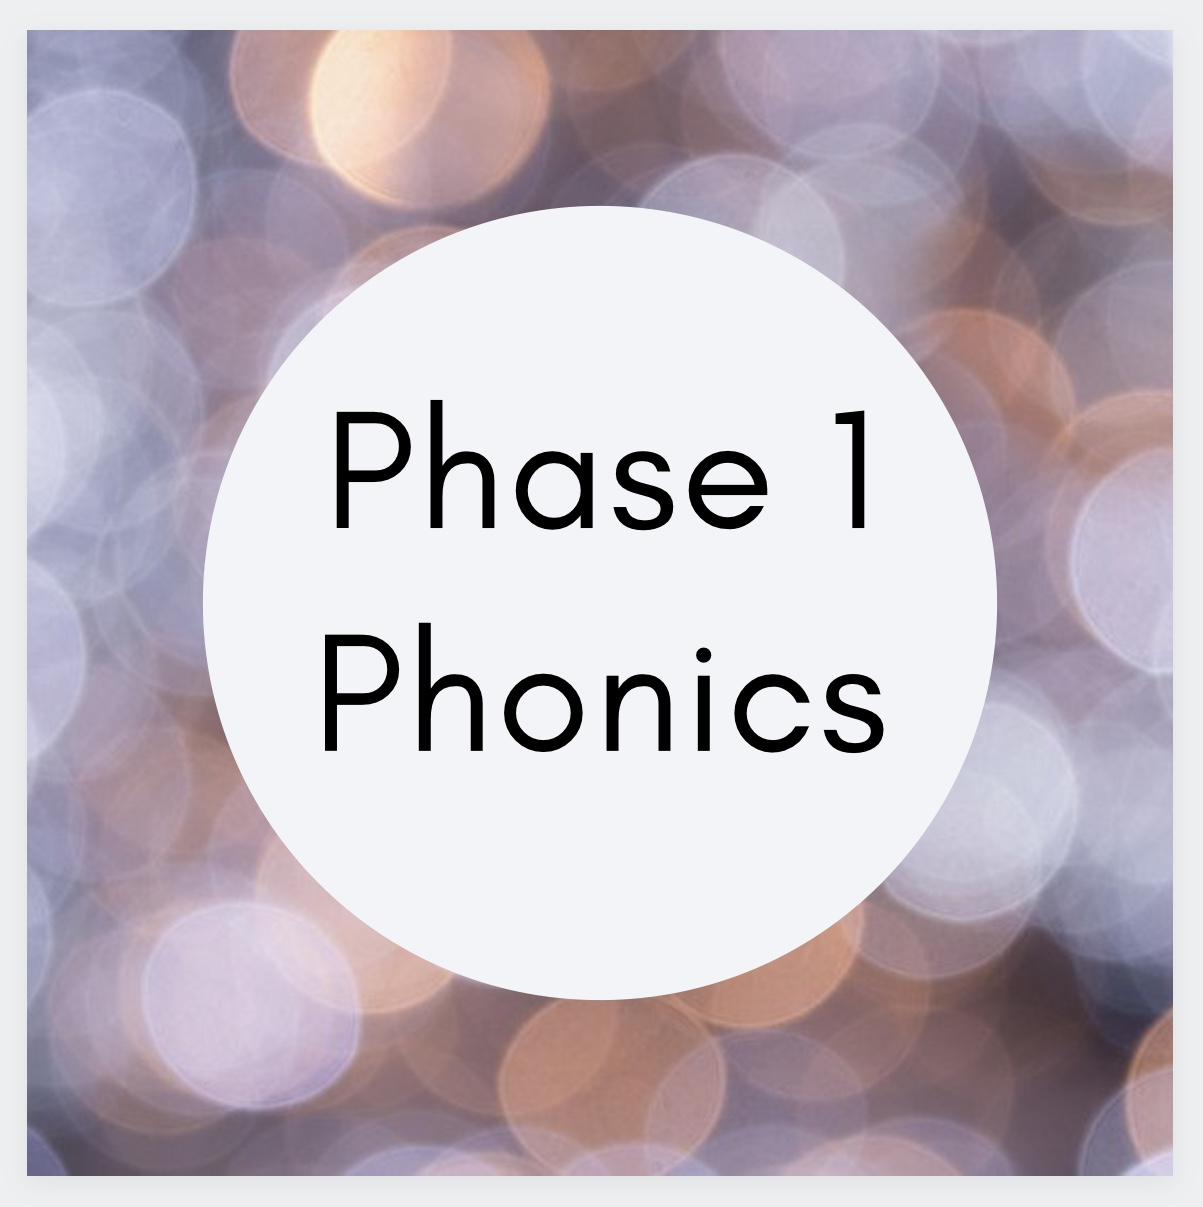 Phase 1 phonics game